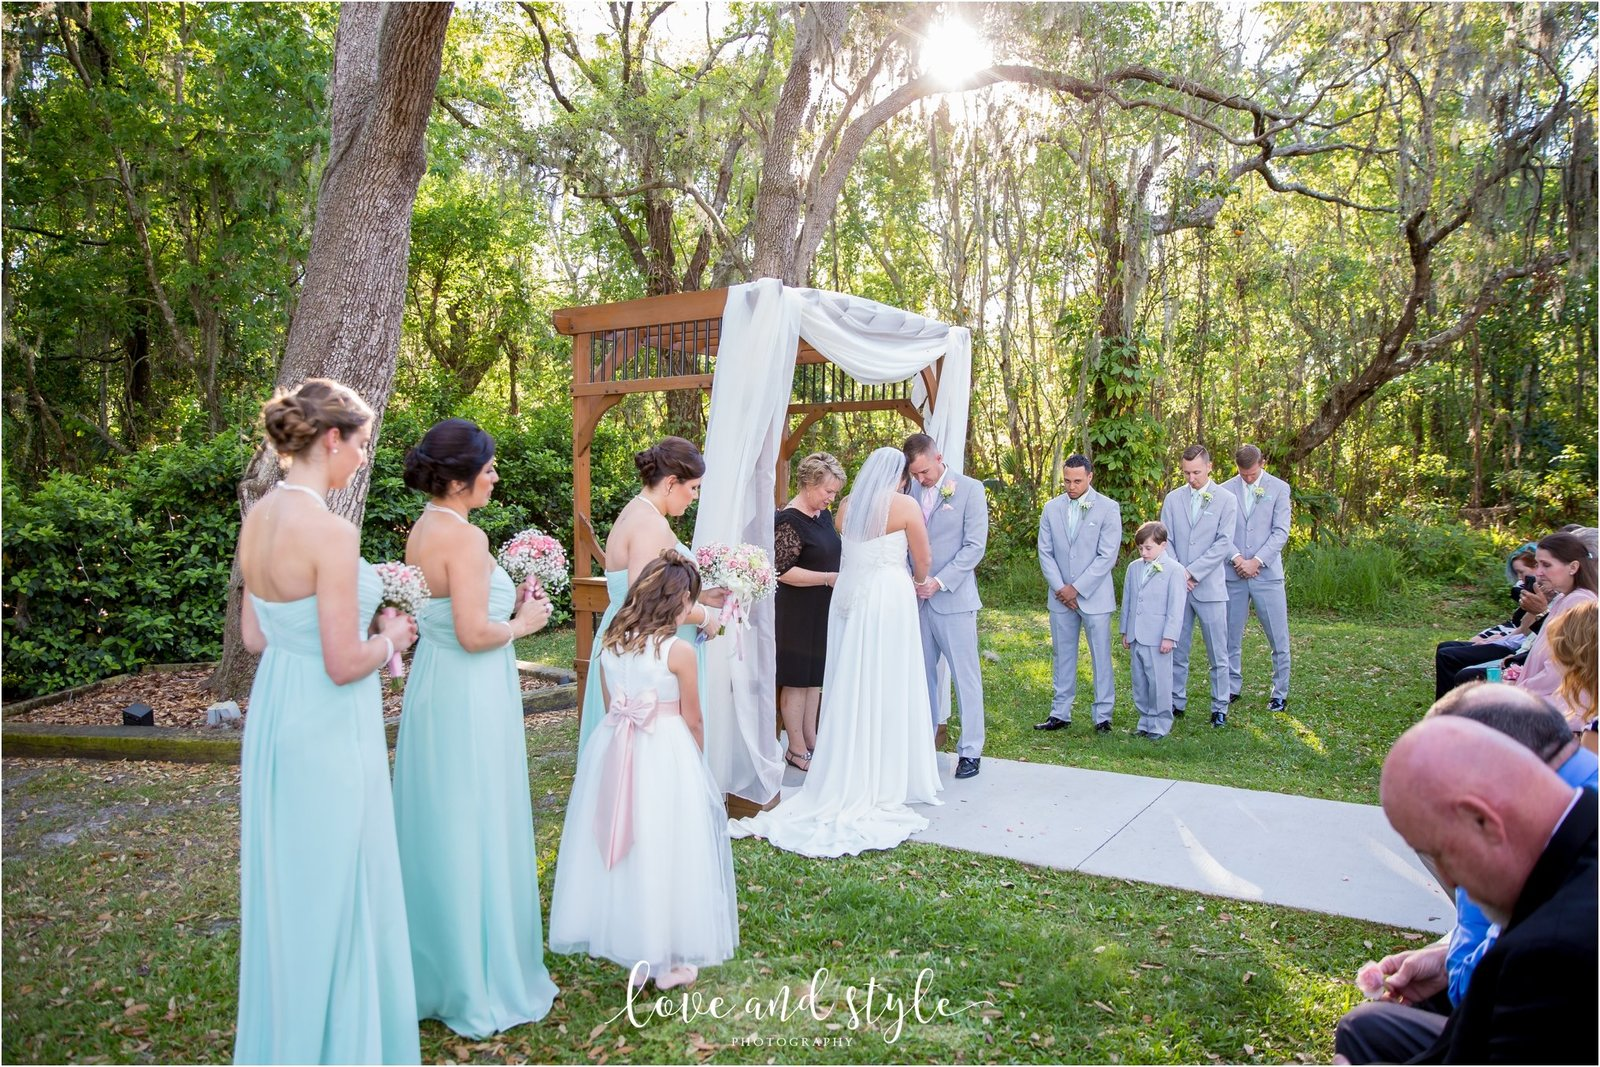 Bakers Ranch Wedding Photography of the ceremony on the grass